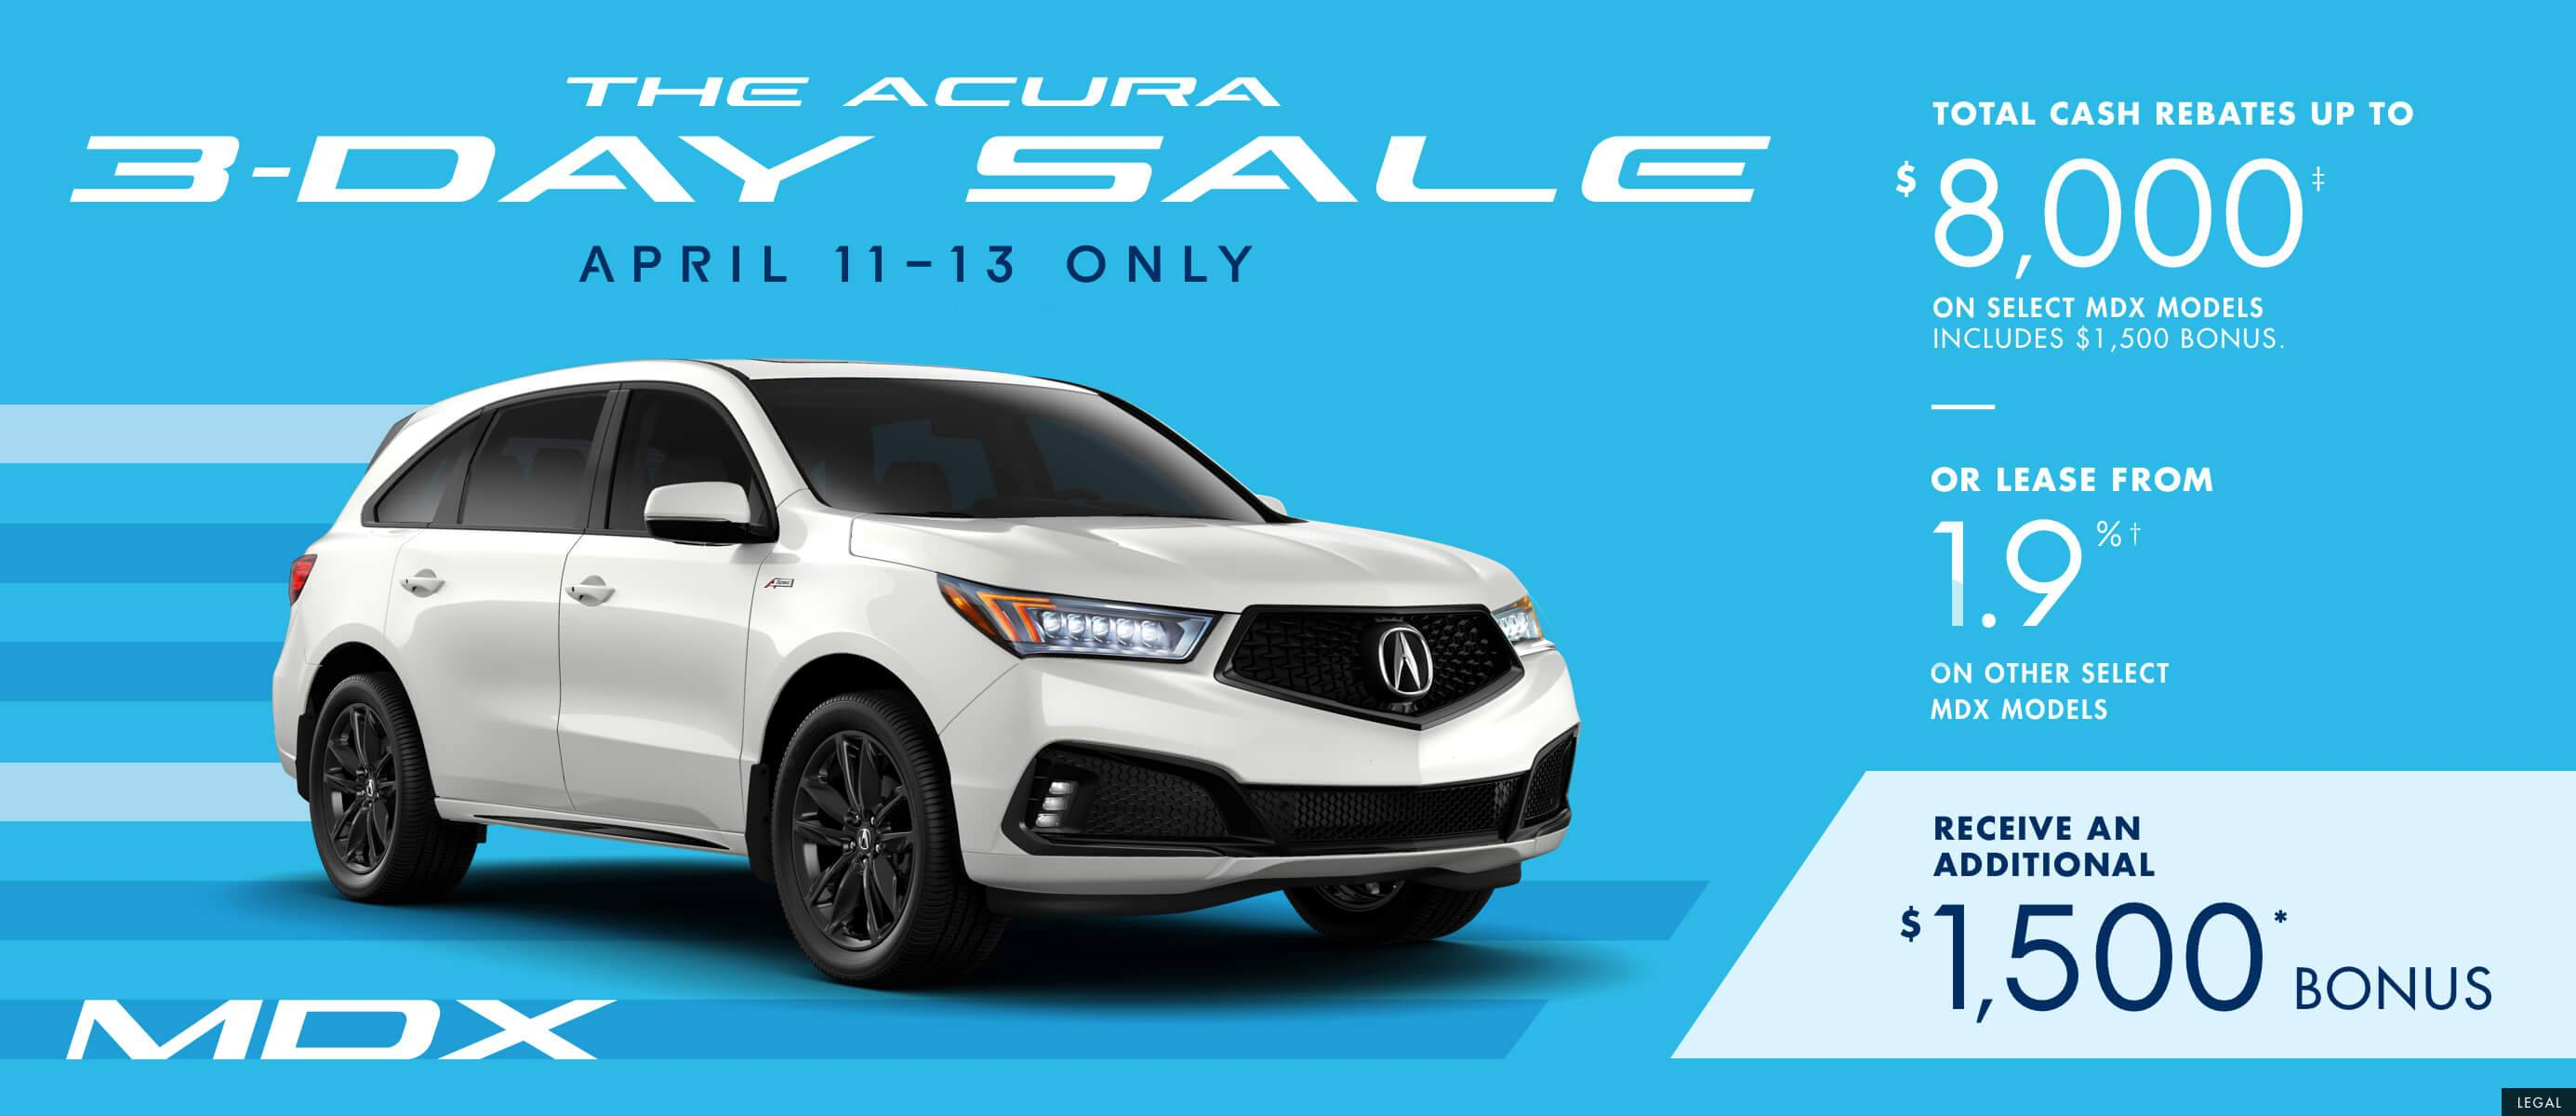 2019 Acura MDX | The Acura 3 Day Sale